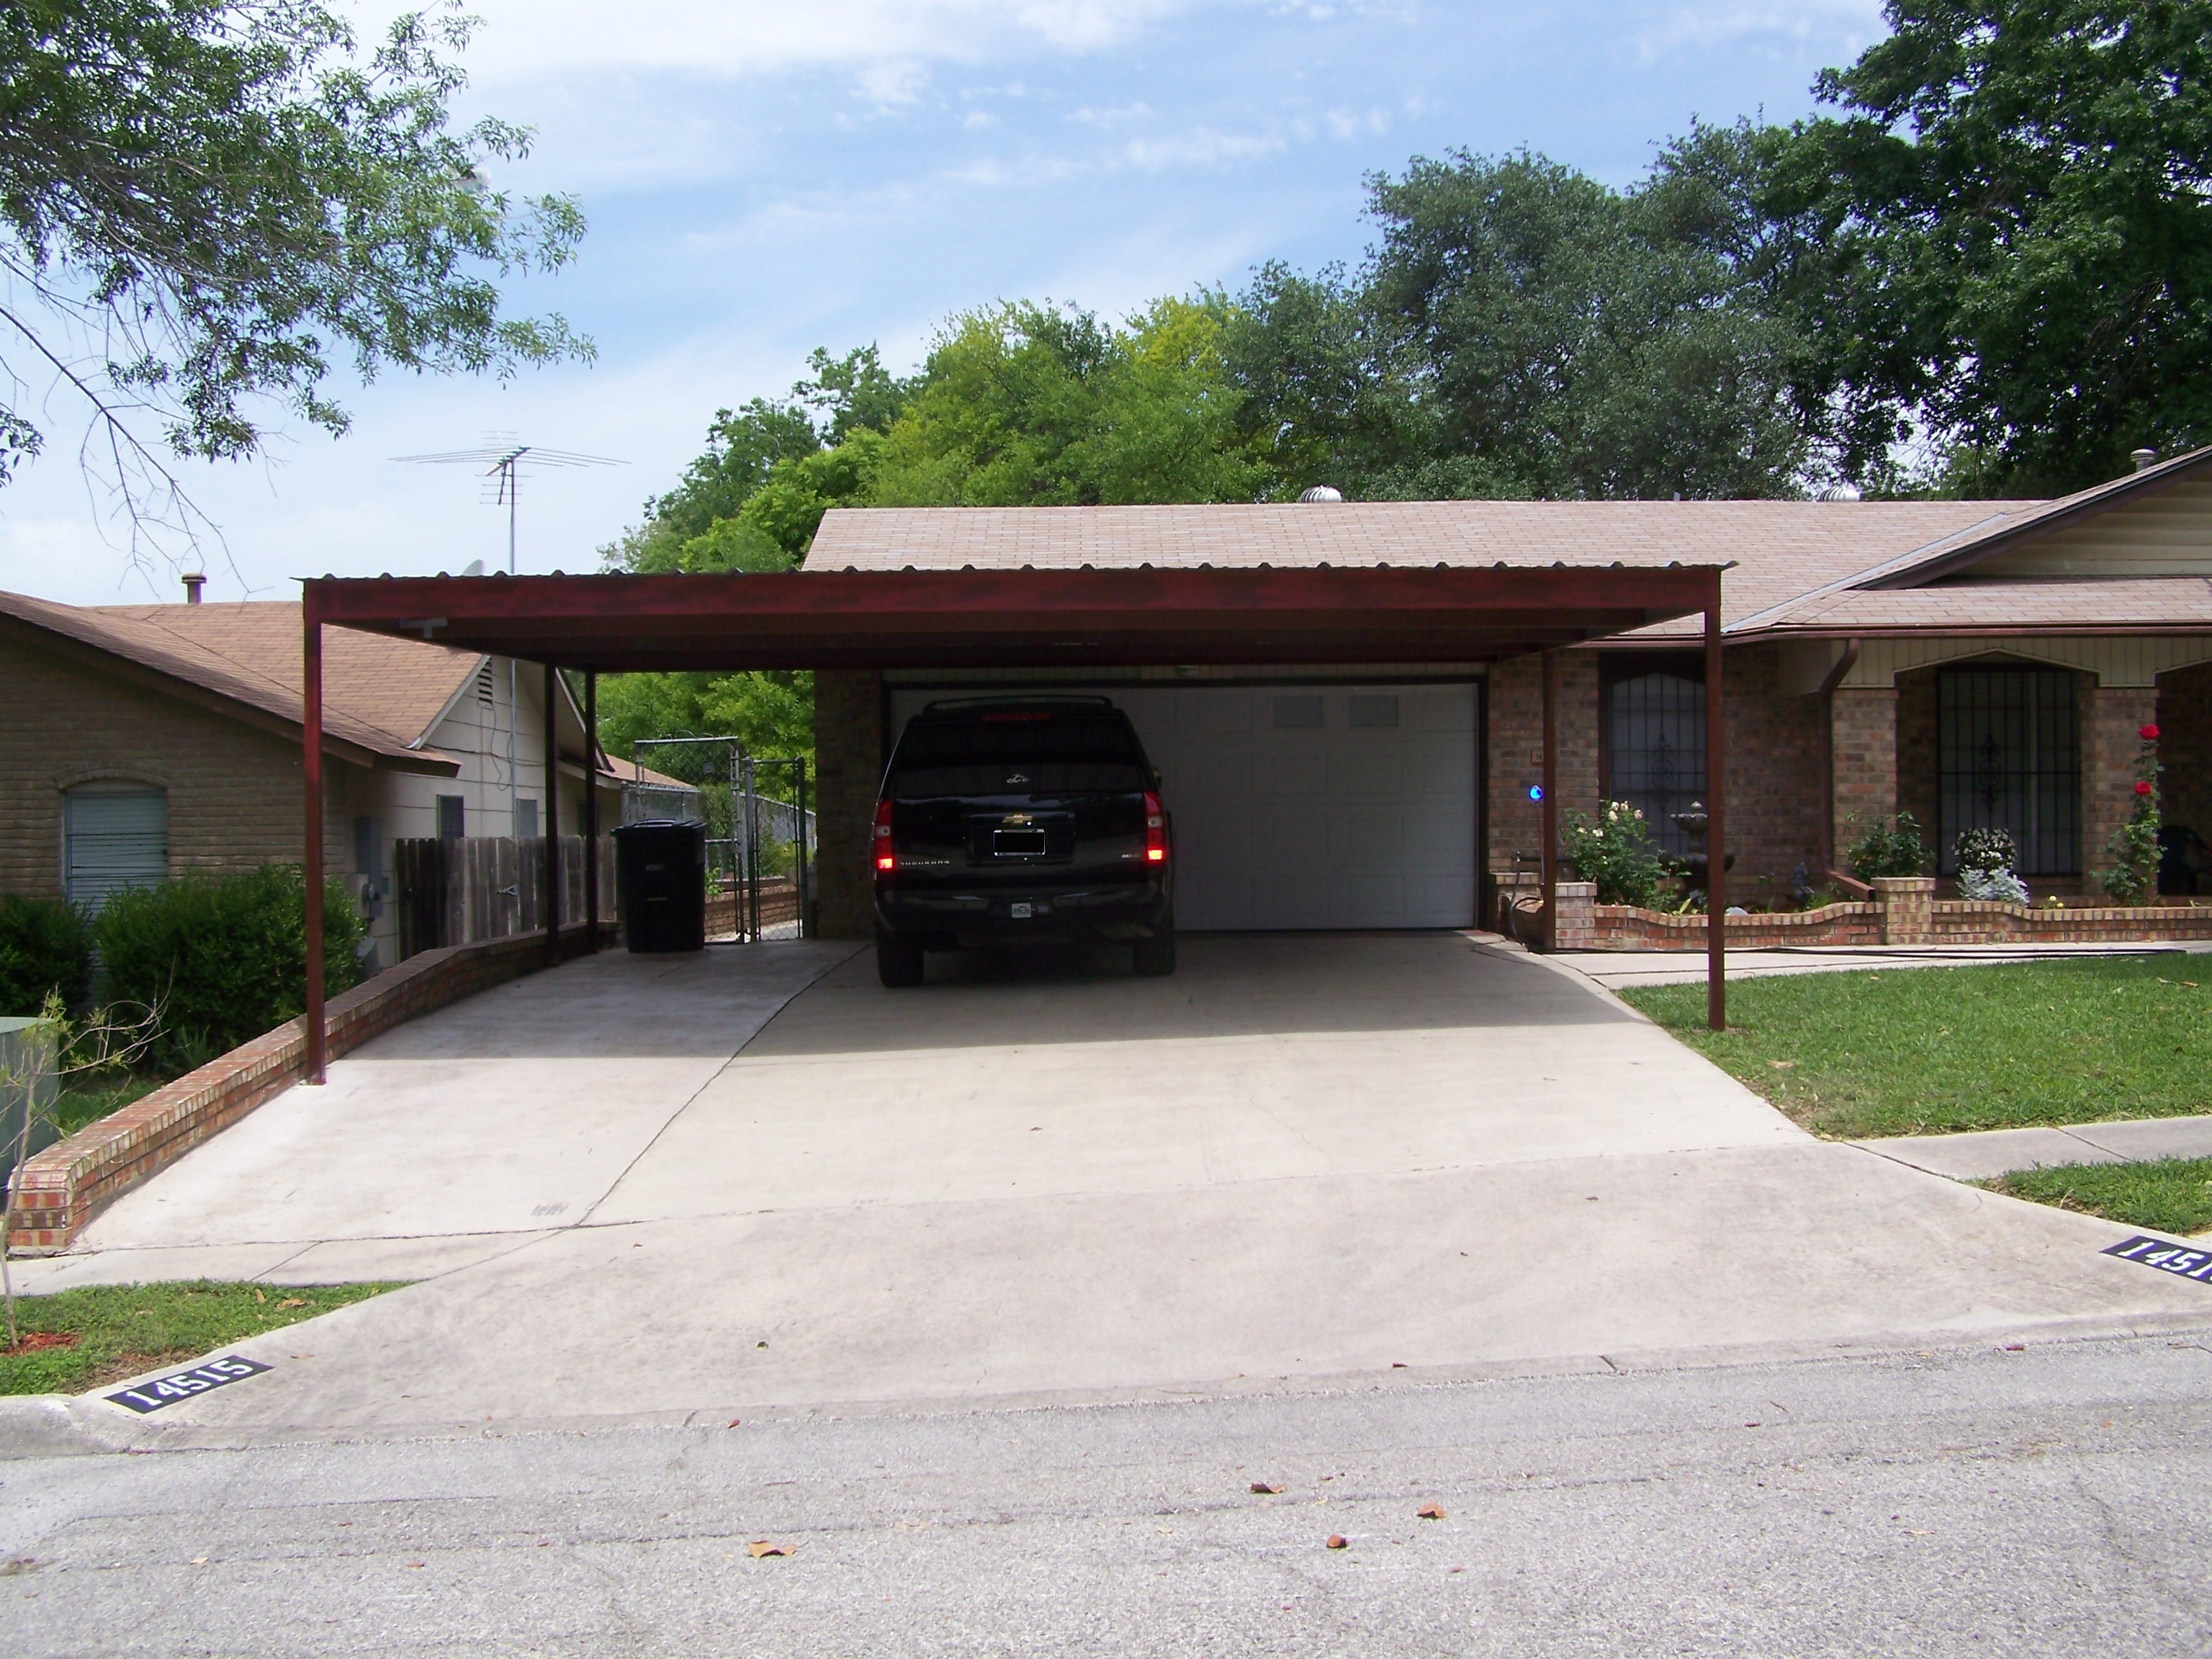 Carports For Cars 8 : Smart placement car carport designs ideas building